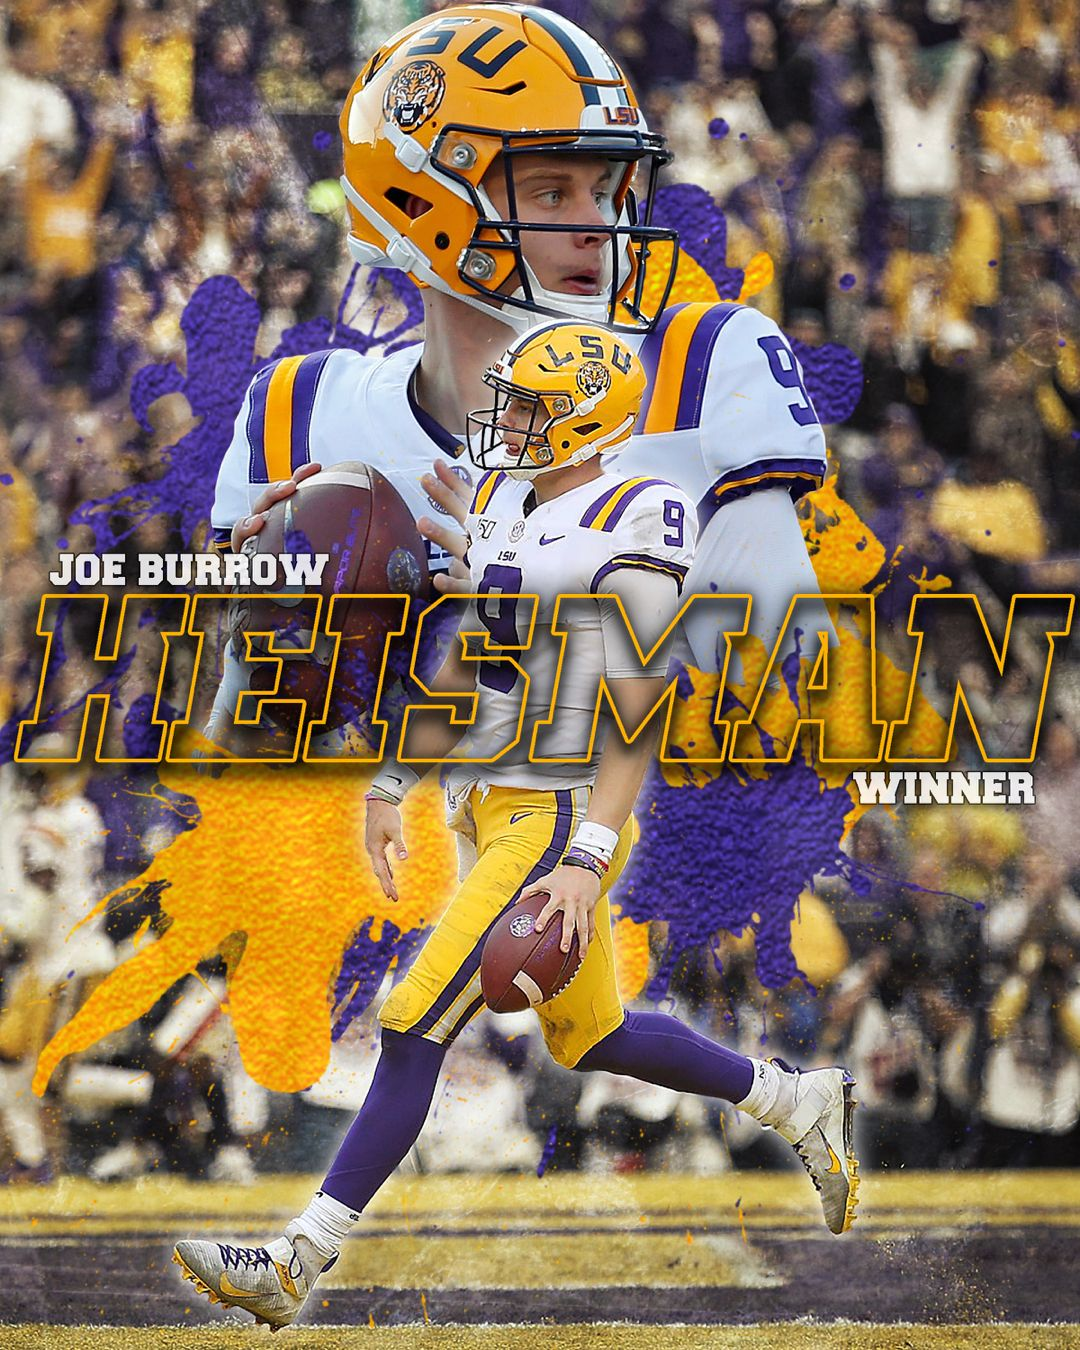 Pin by Terri Shelton on GEAUX TIGERS in 2020 (With images